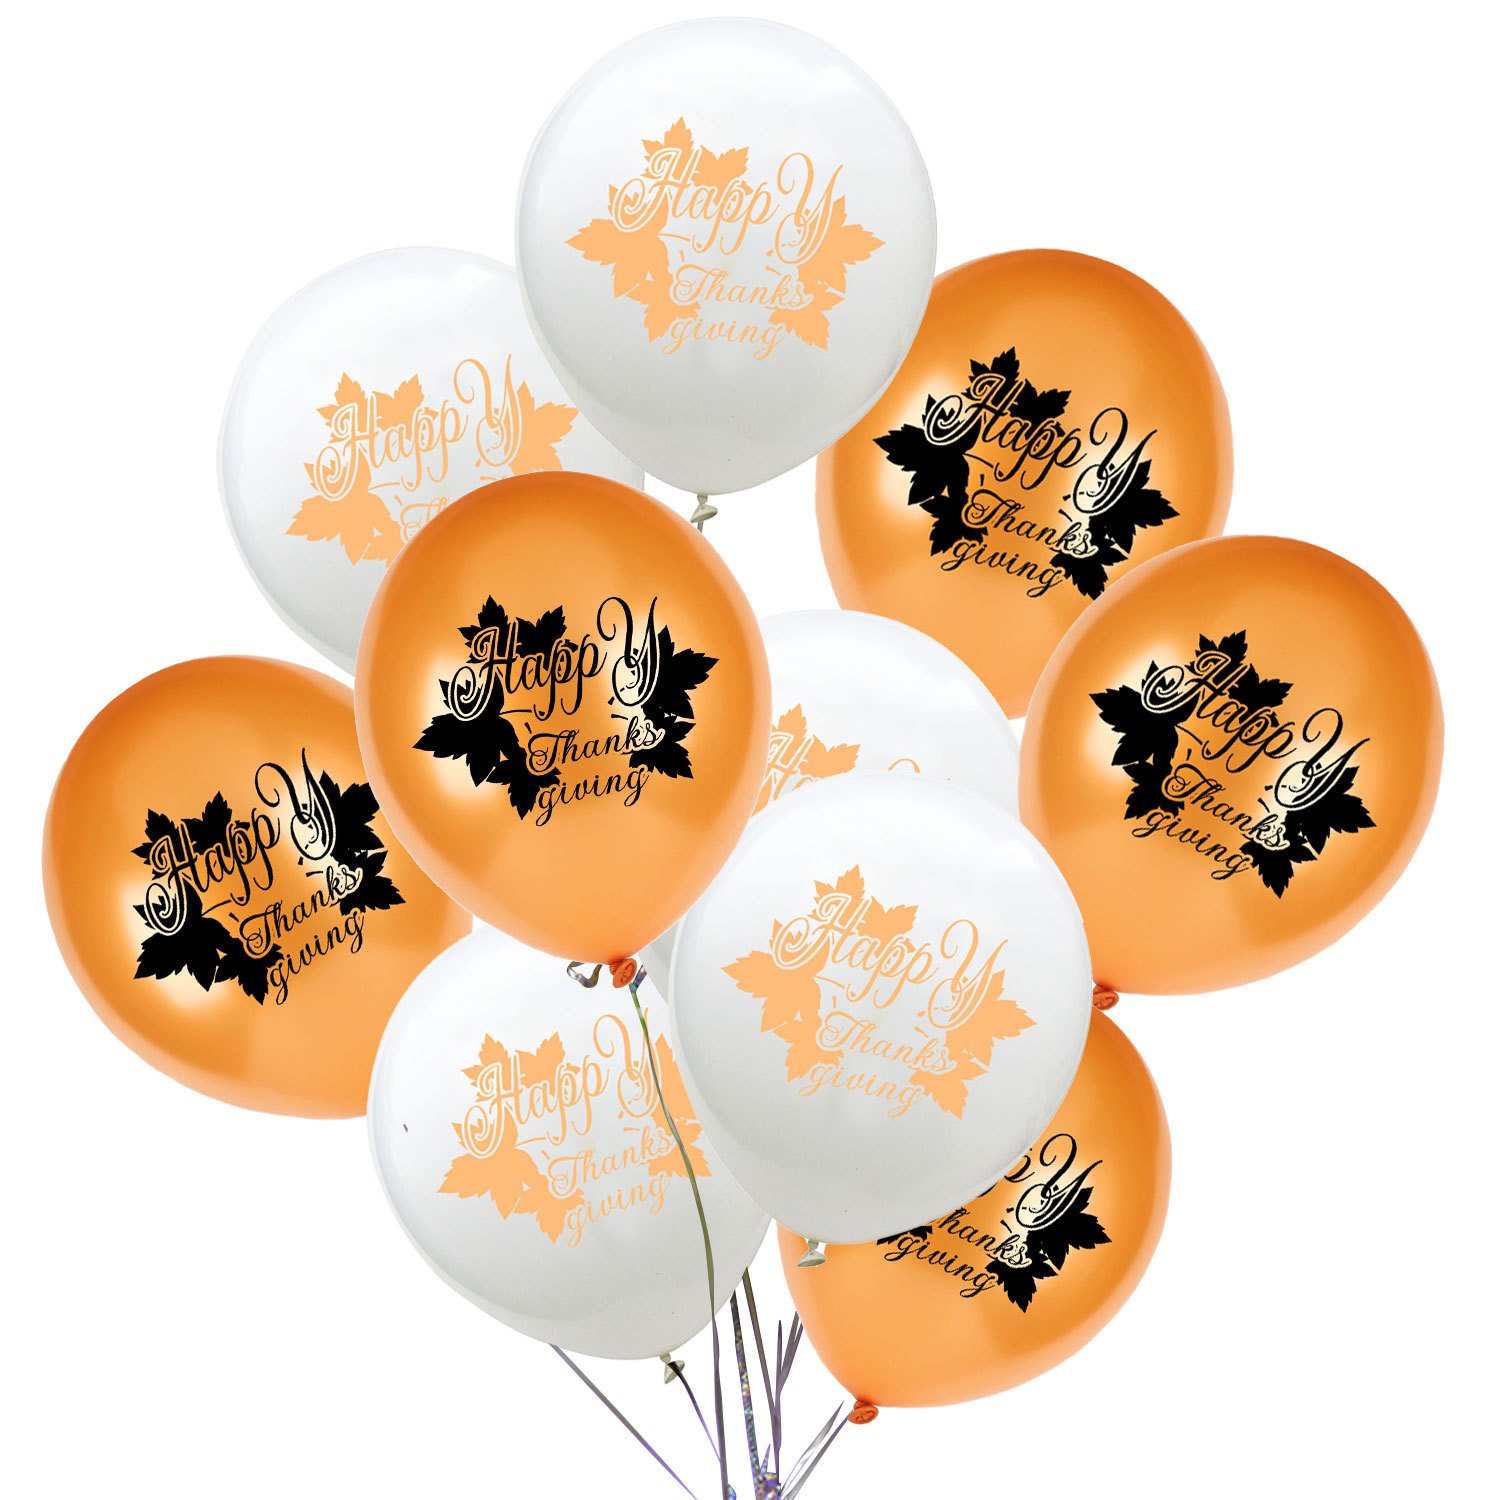 Us 3 1 15 Off 10pcs 12 Inch Maple Leaf Balloons Thanksgiving Party Home Classroom Decorations Happy Thanksgiving Decor Printed Latex Balloons In